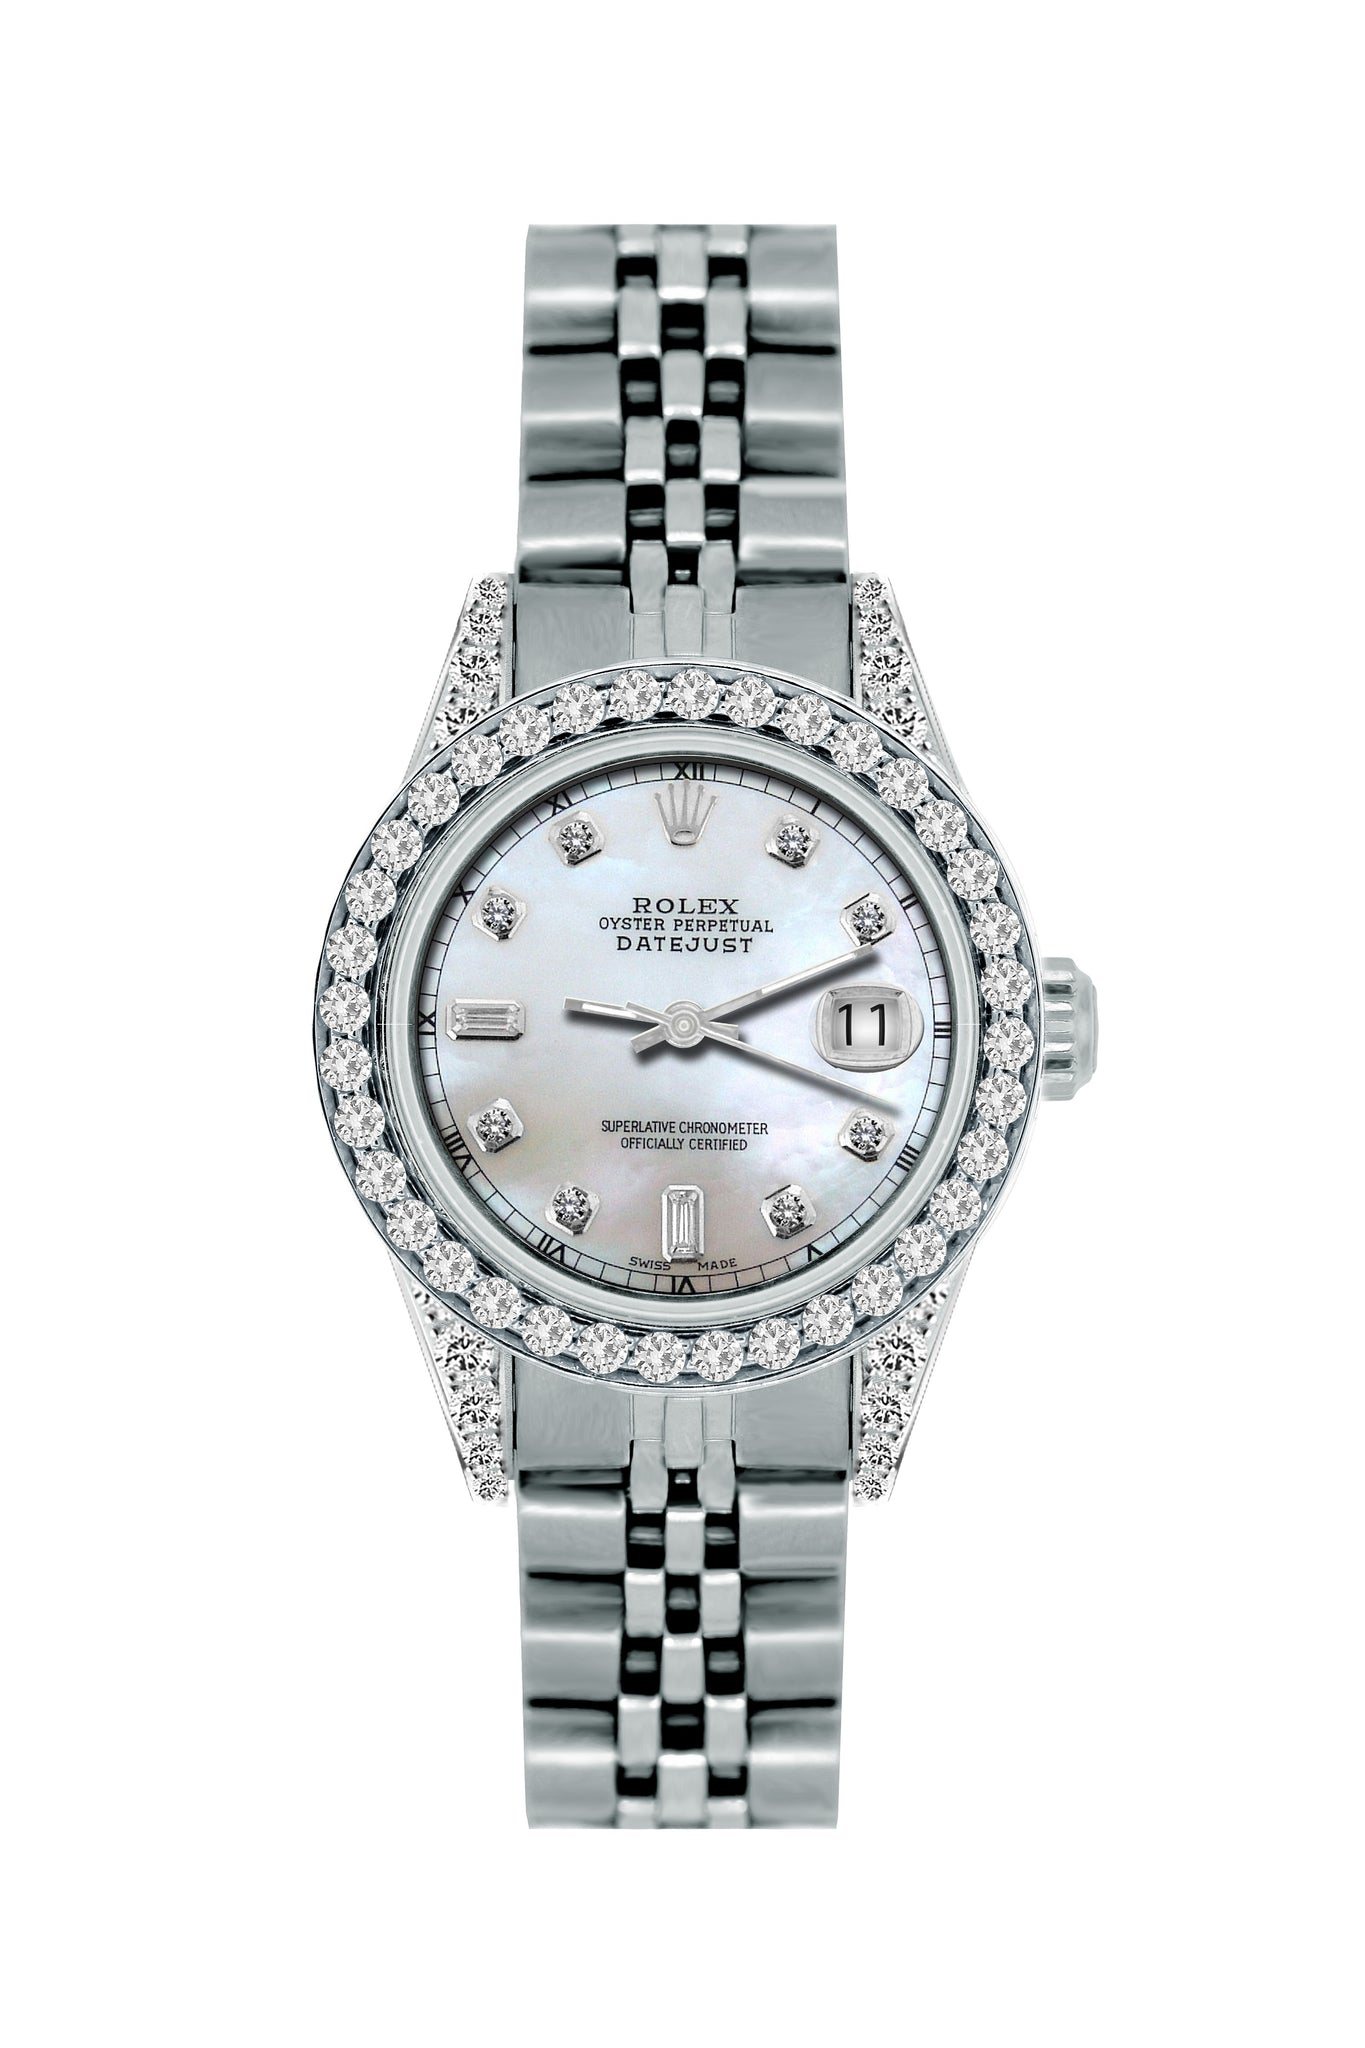 Rolex Datejust Diamond Watch, 26mm, Stainless SteelBracelet Mystic Dial w/ Diamond Bezel and Lugs